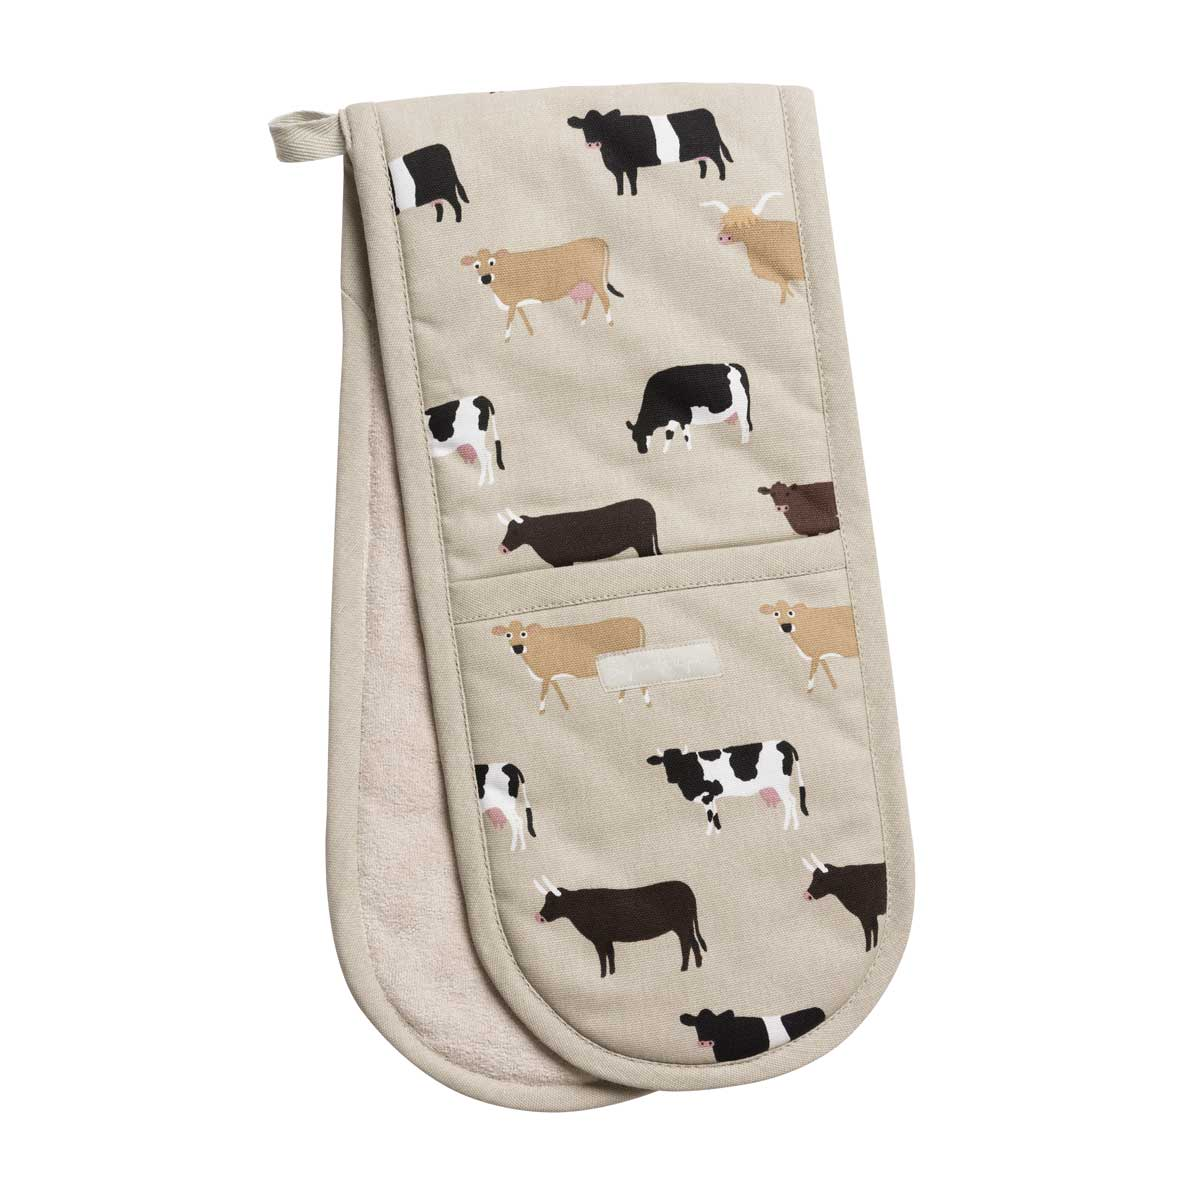 Cows Double Oven Glove